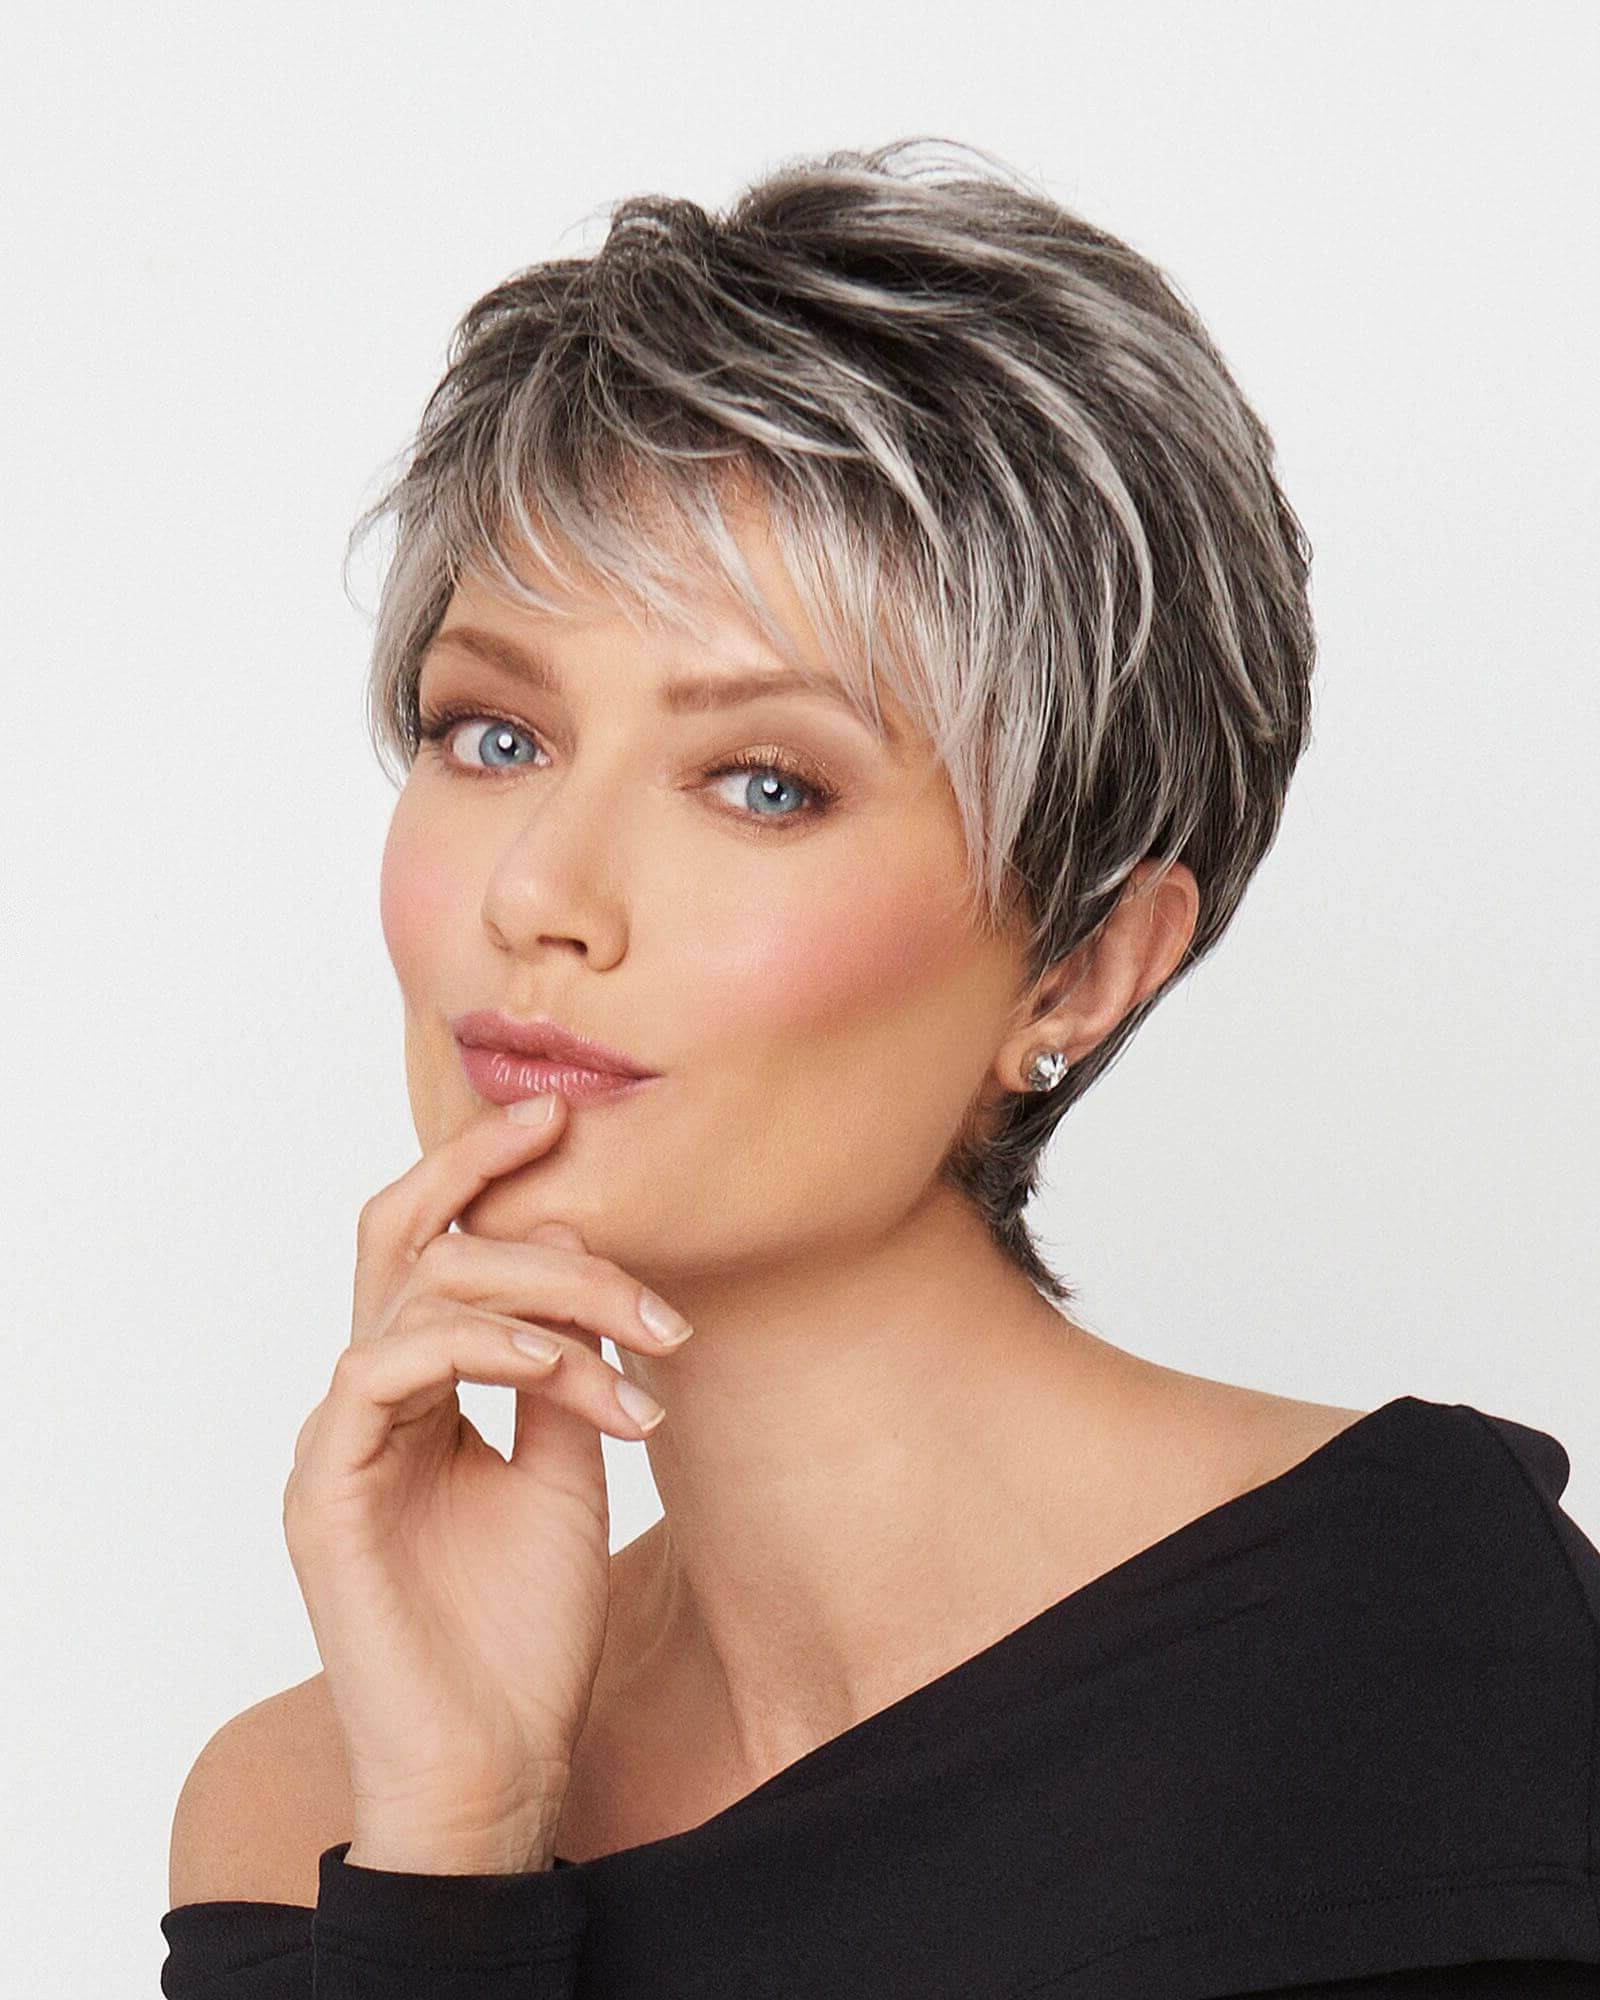 50 Pixie Haircuts You'll See Trending In 2019 With Trendy Pixie Haircuts With Vibrant Highlights (View 14 of 20)